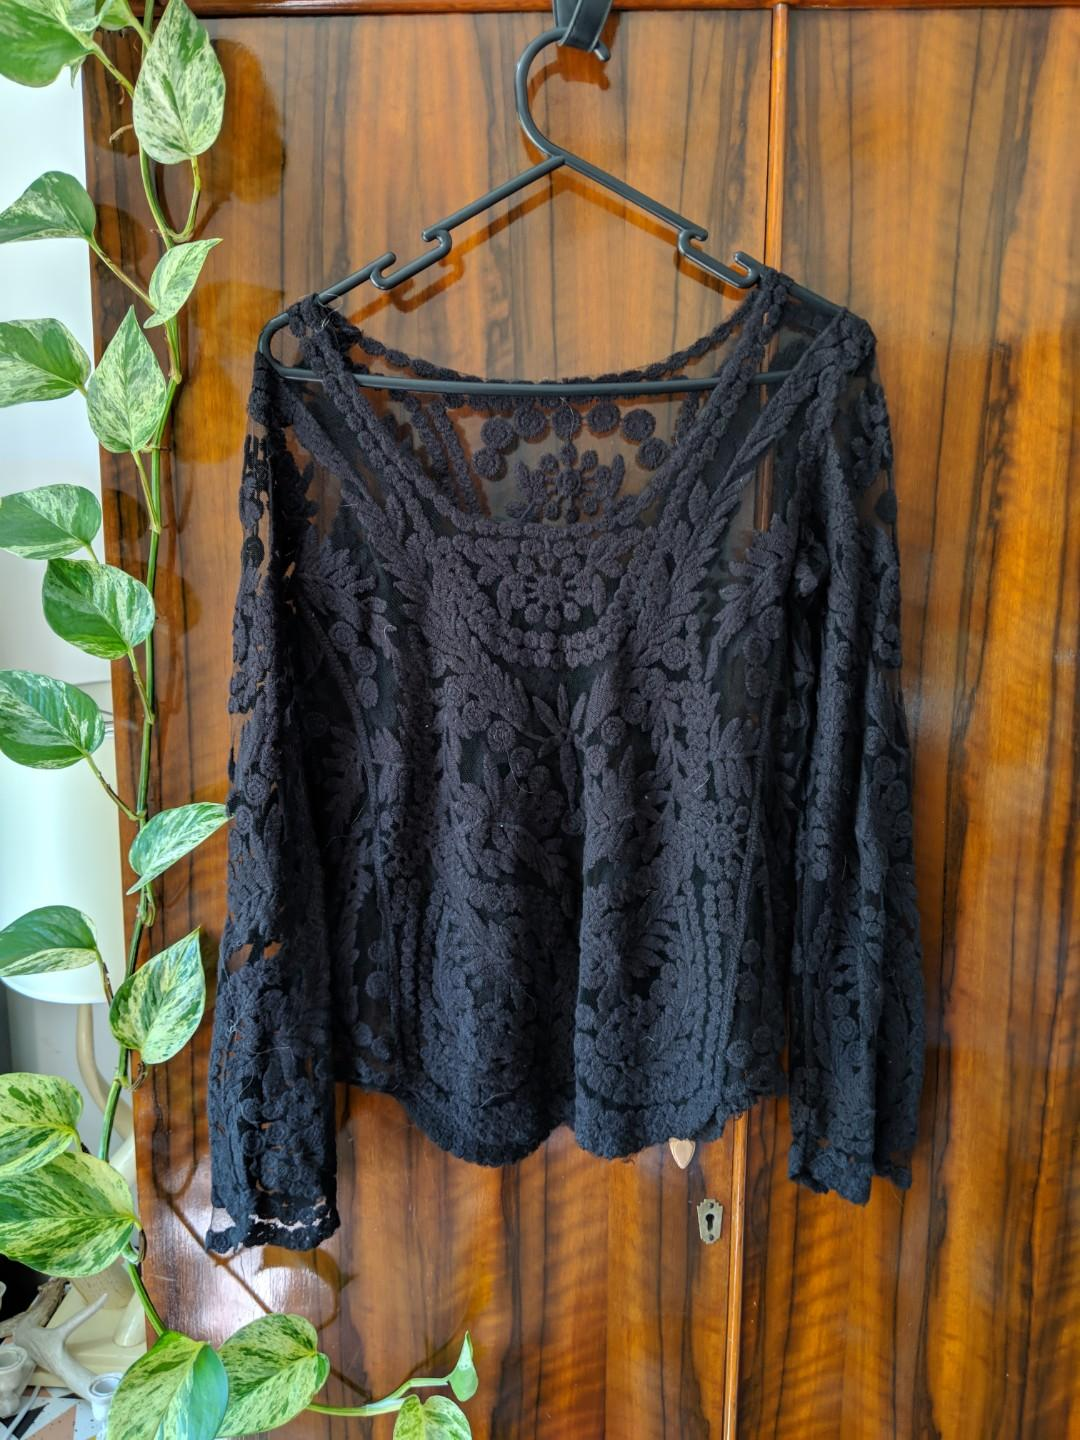 Lace embroided top jumper